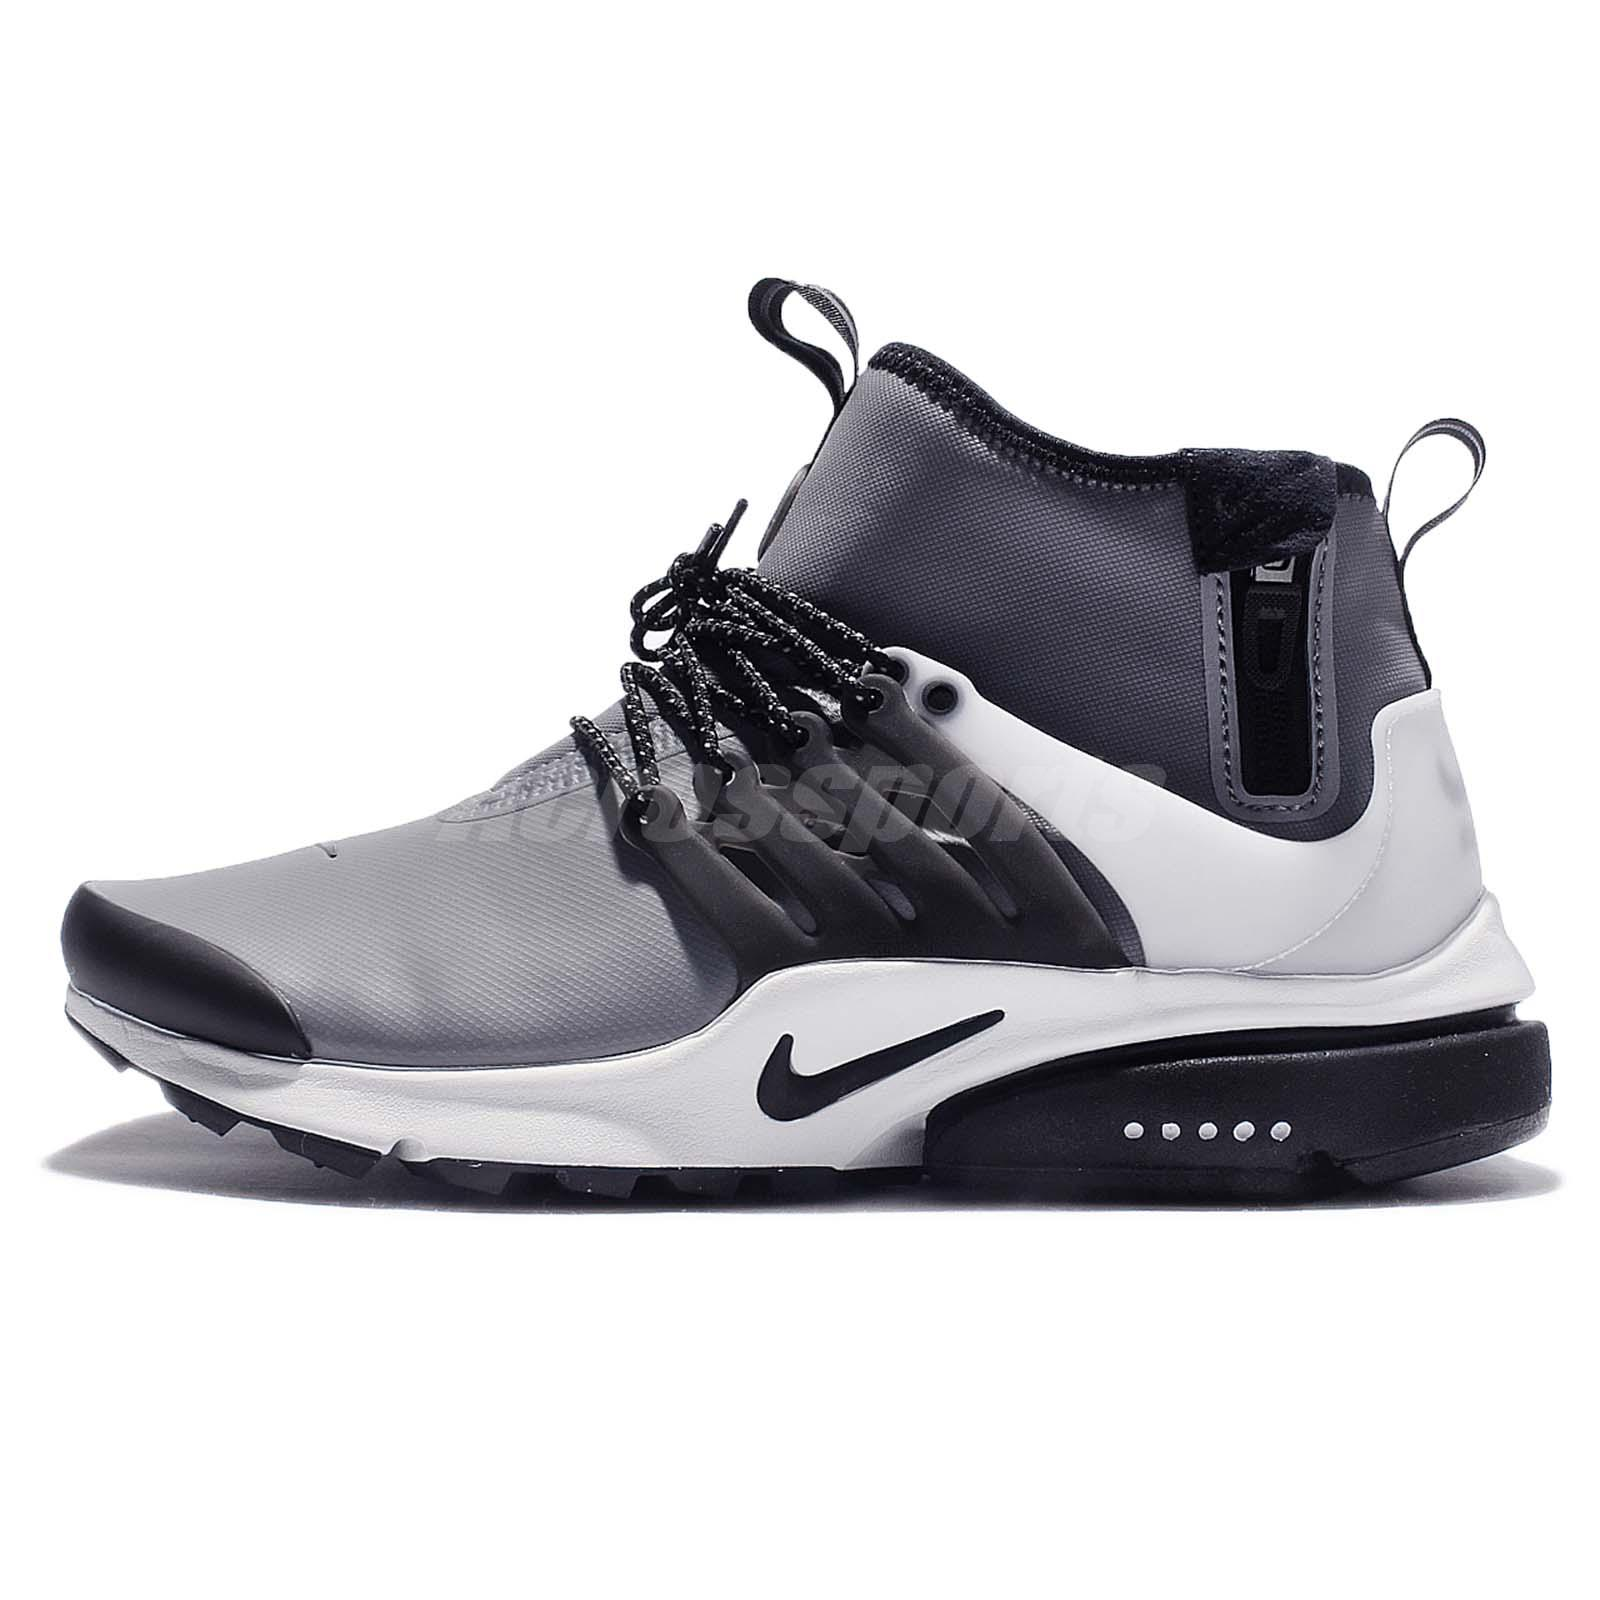 buy popular f02d6 b1386 ... Nike Air Presto Mid Utility DWR Cool Grey Men Side Zip Winter Shoes  859524-001 ...